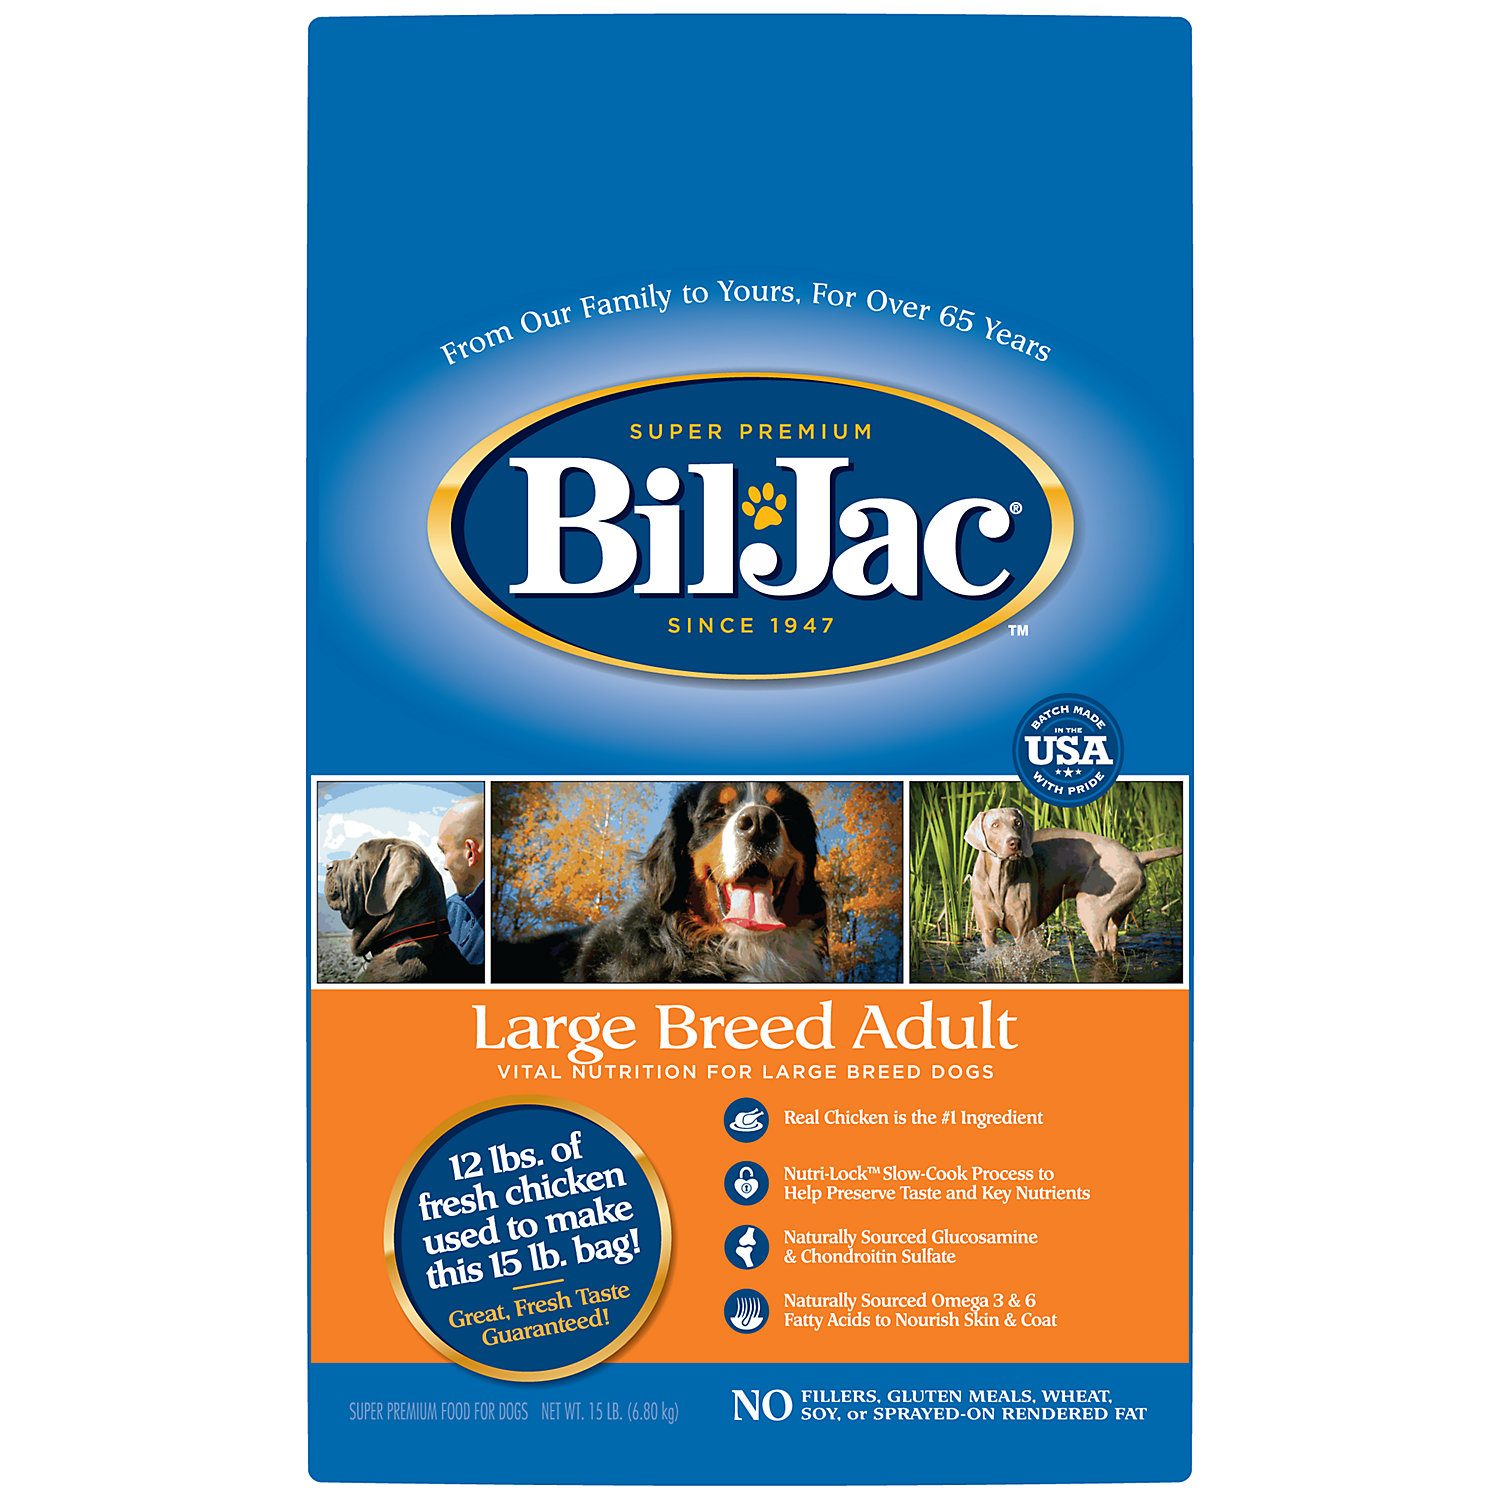 Bil Jac Large Breed Adult Select Dry Dog Food 15 Lbs. 15 Lb Bag